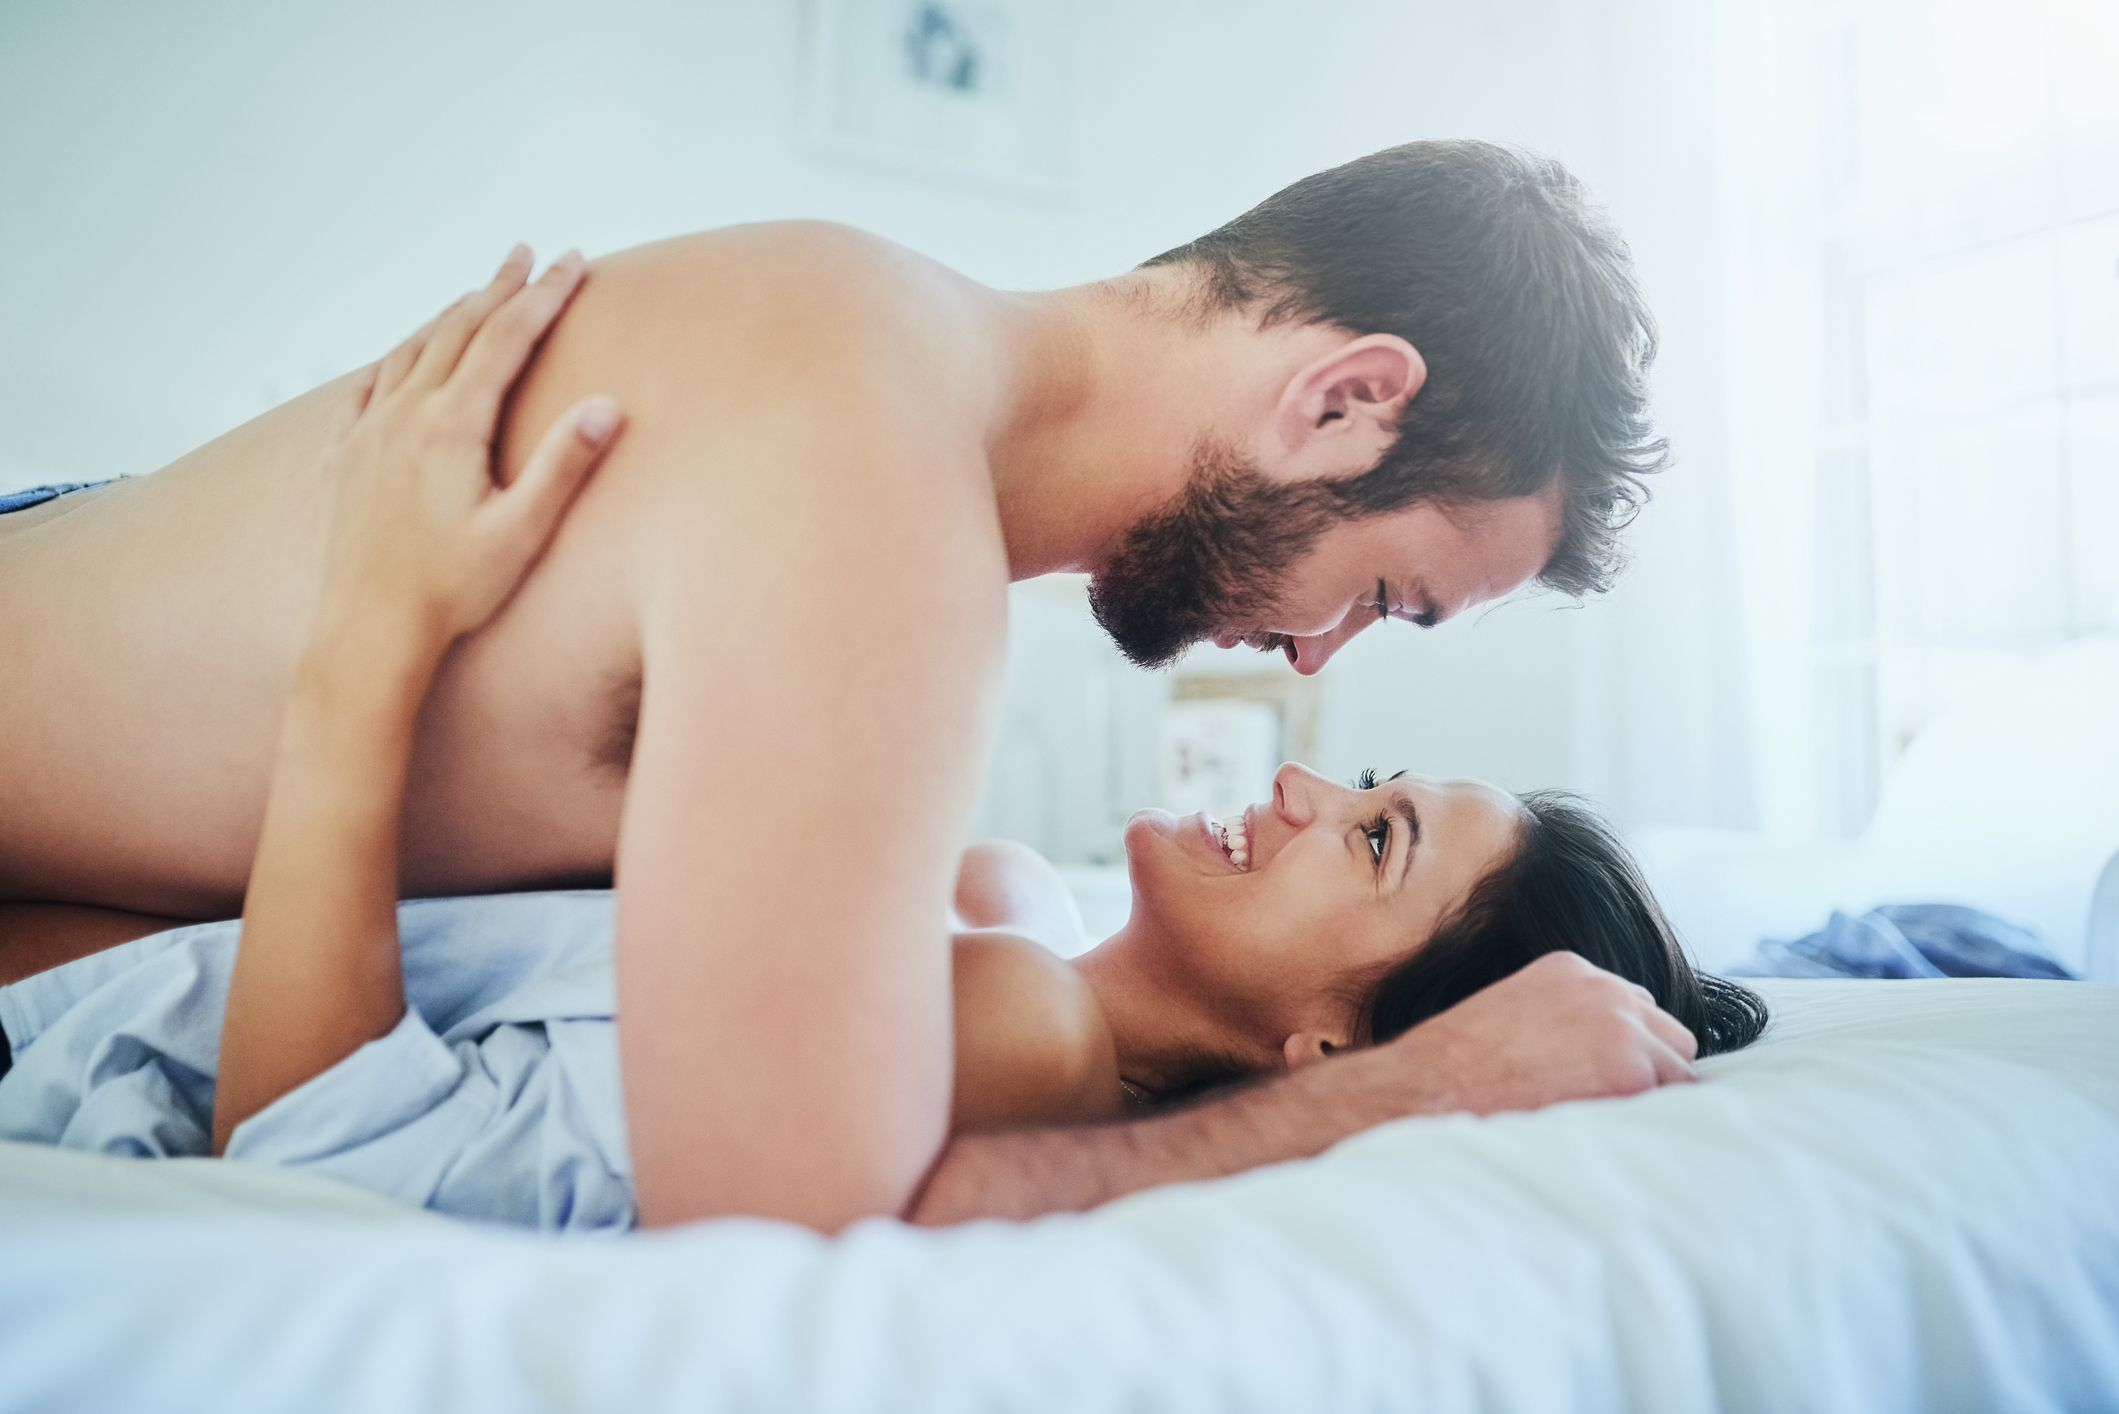 10 Exciting Ways to Spice Up Missionary Sex